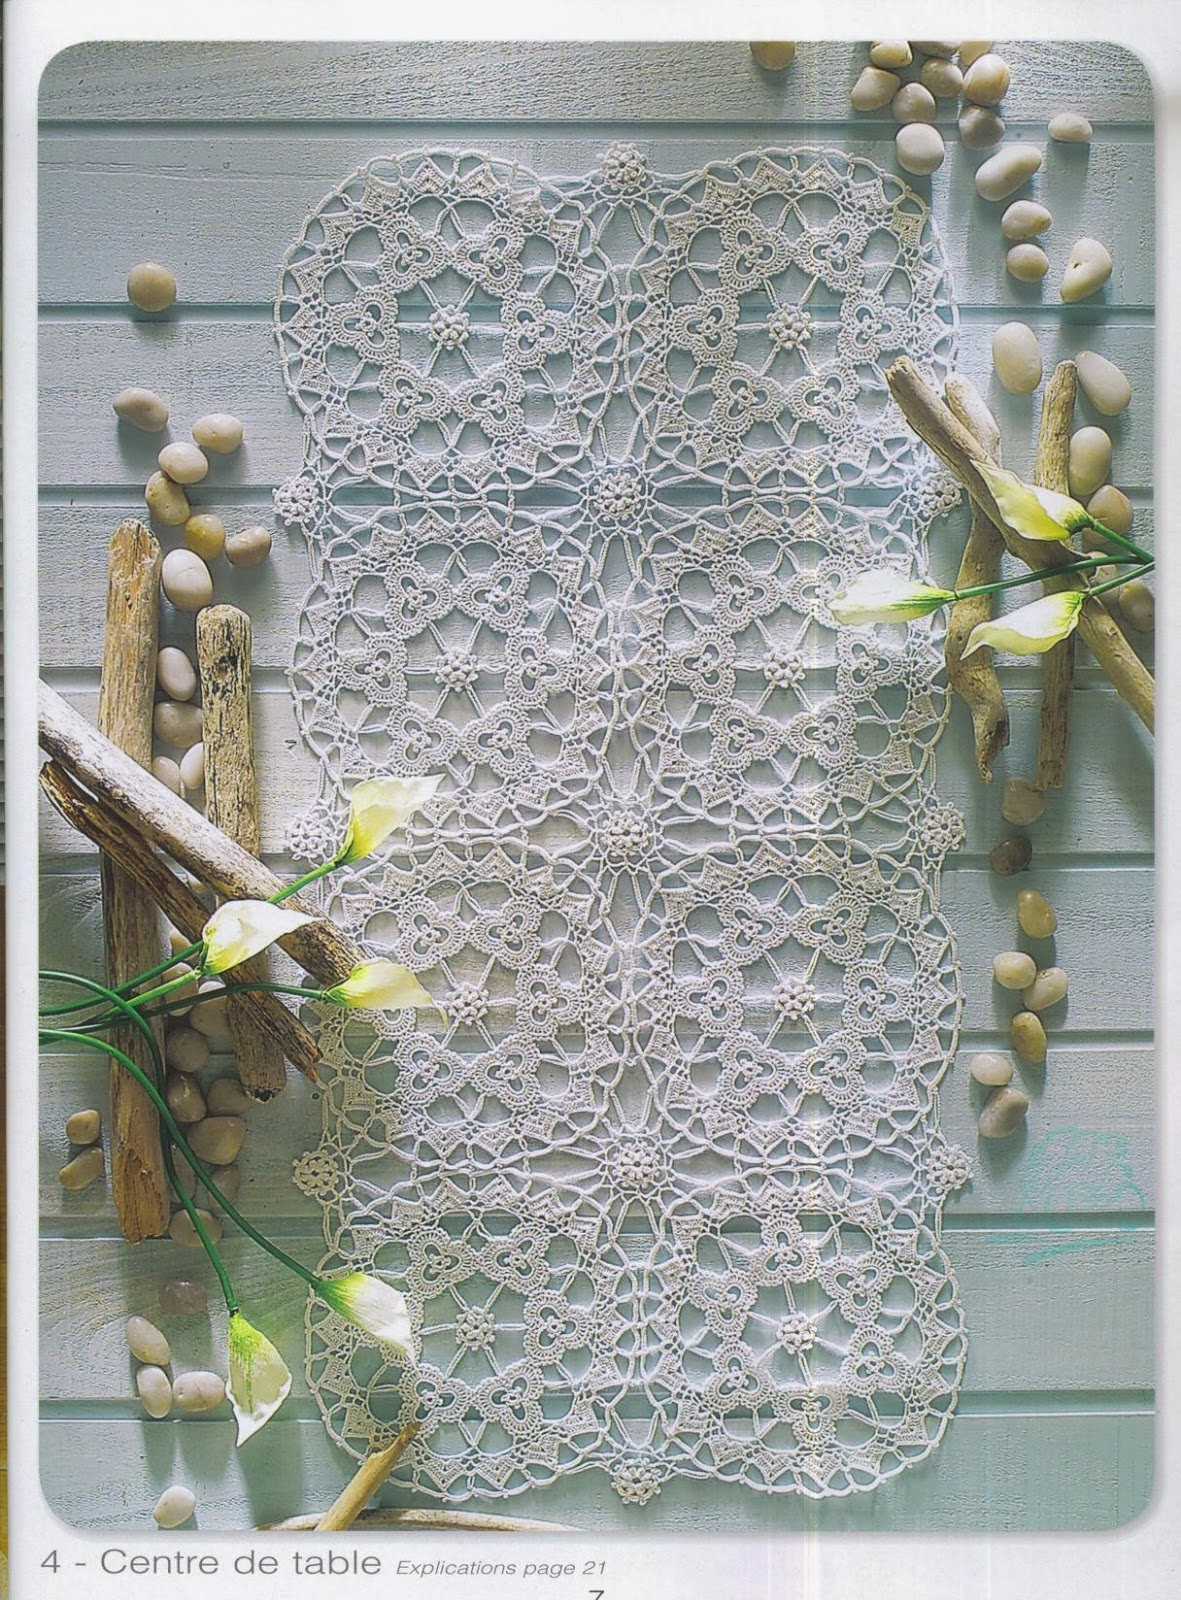 Piastrelle All'uncinetto Per Tende Lo Spazio Di Lilla Schemi All Uncinetto Crochet Patterns Free